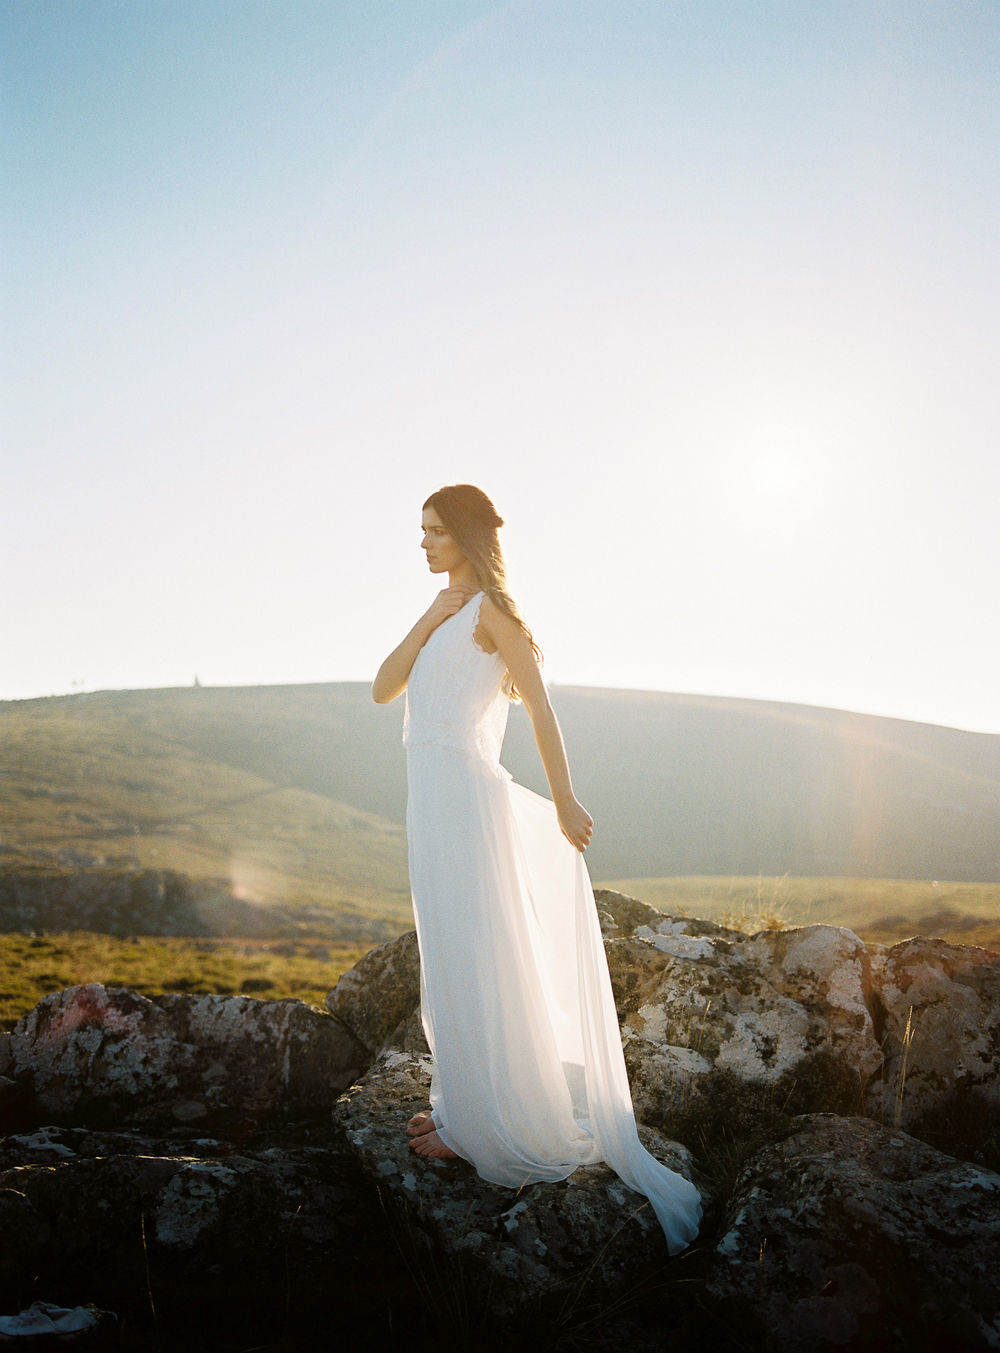 Bohemian Wedding Dress - Rembo Styling - ©Celine Chhuon